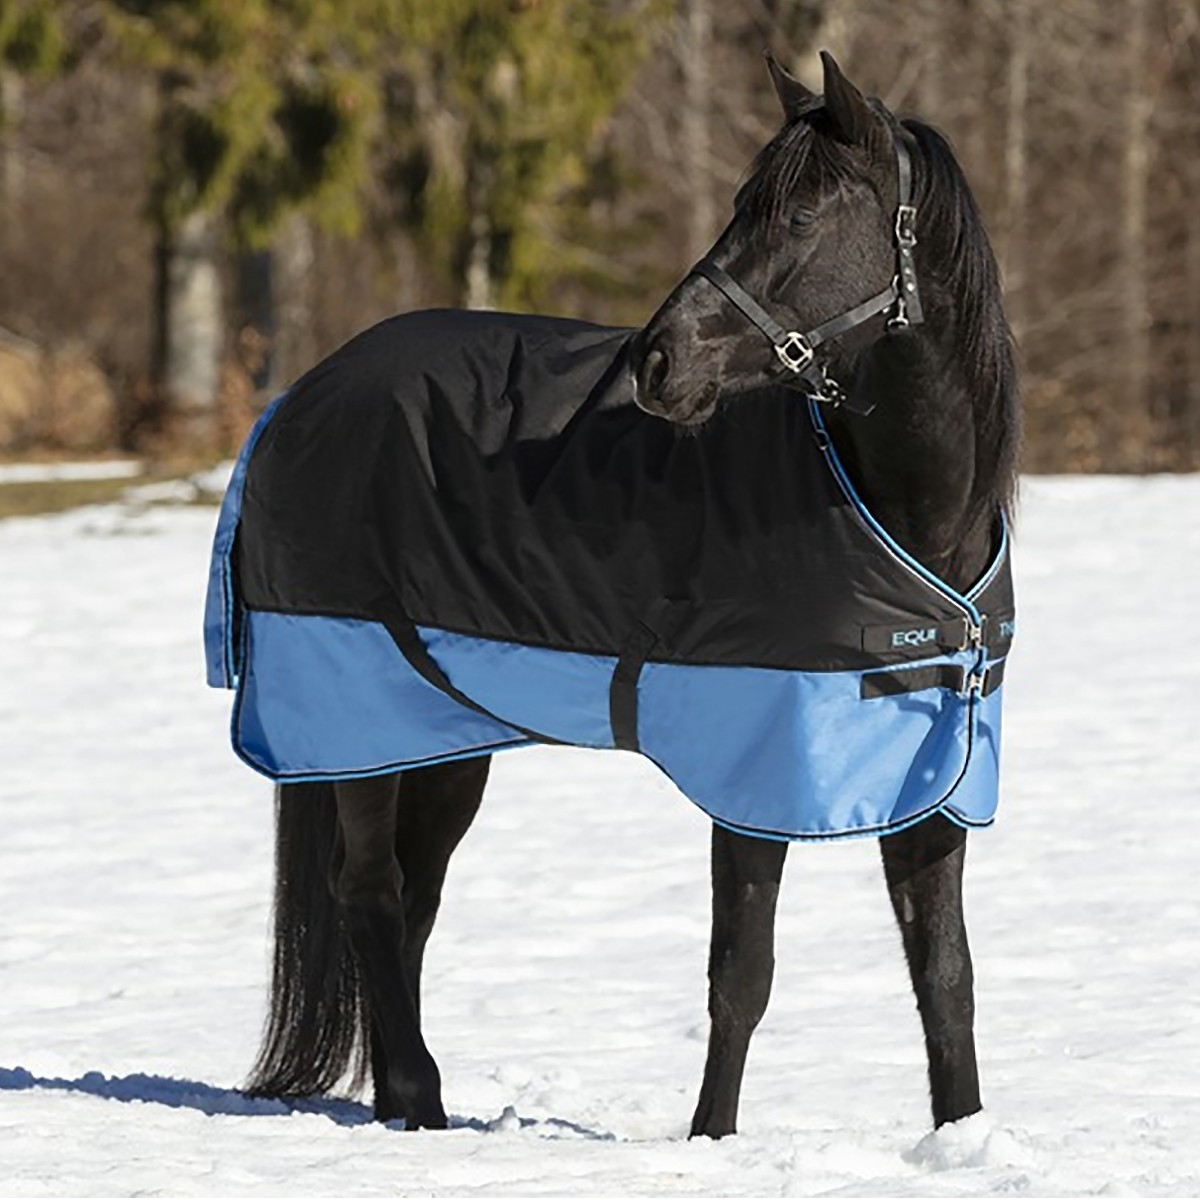 Equitheme Tyrex 600D Lightweight Black/Light Blue Turnout Rug